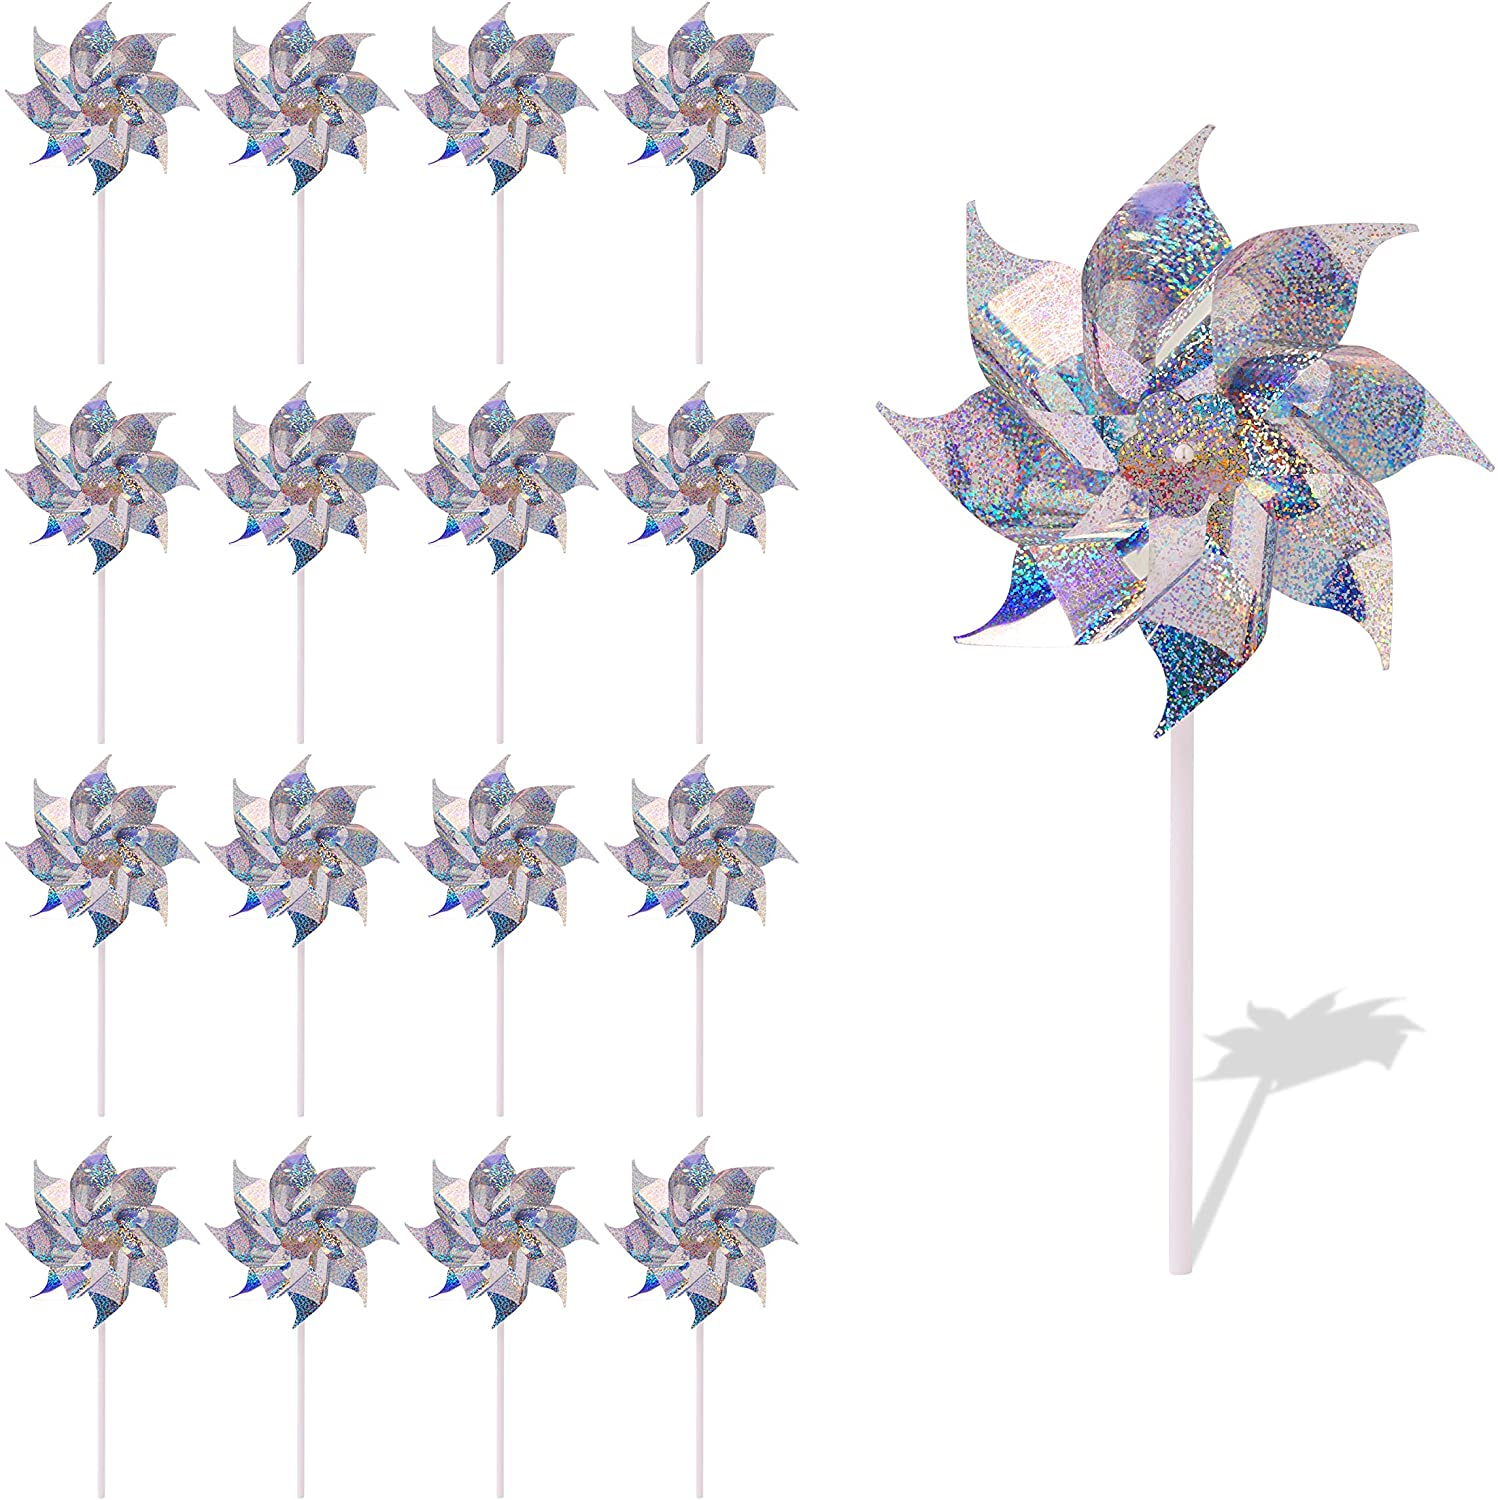 Blue Panda Holographic Pinwheels for Yard and Garden, Silver Wind Spinner (7.7 in, 12 Pack)